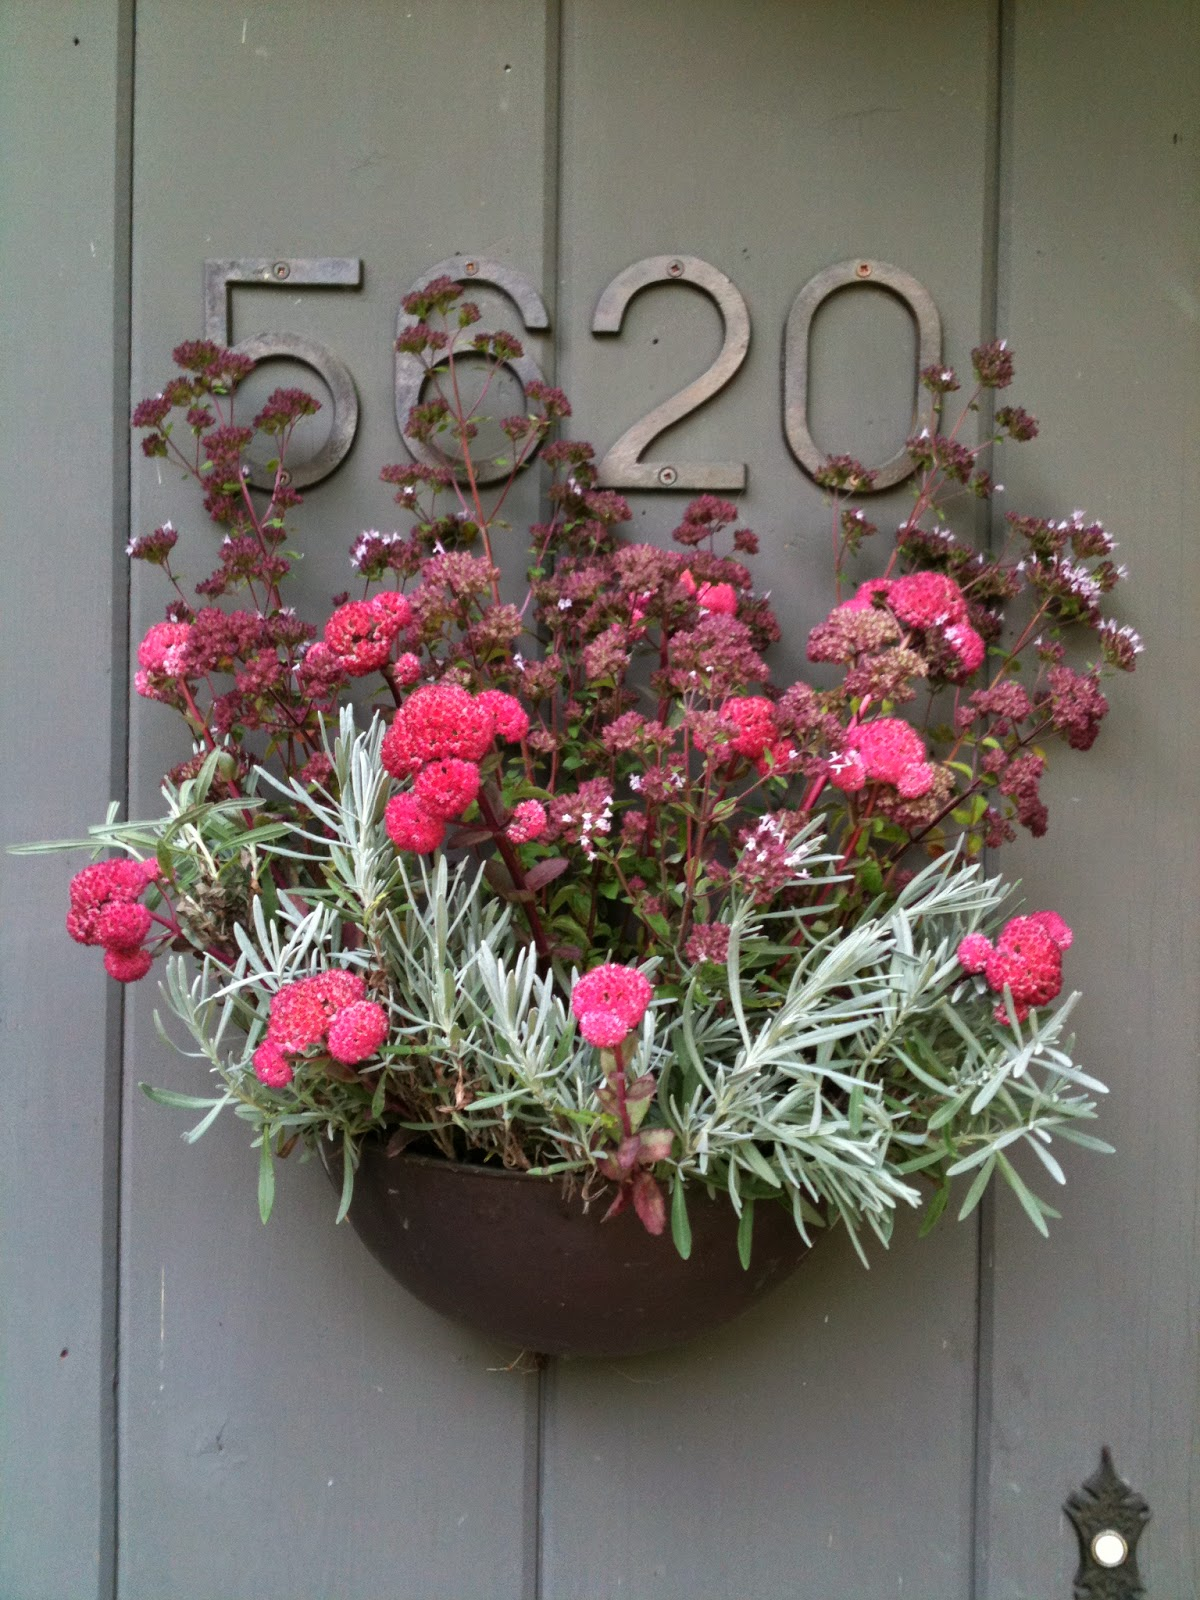 Image of Flower planter with house numbers